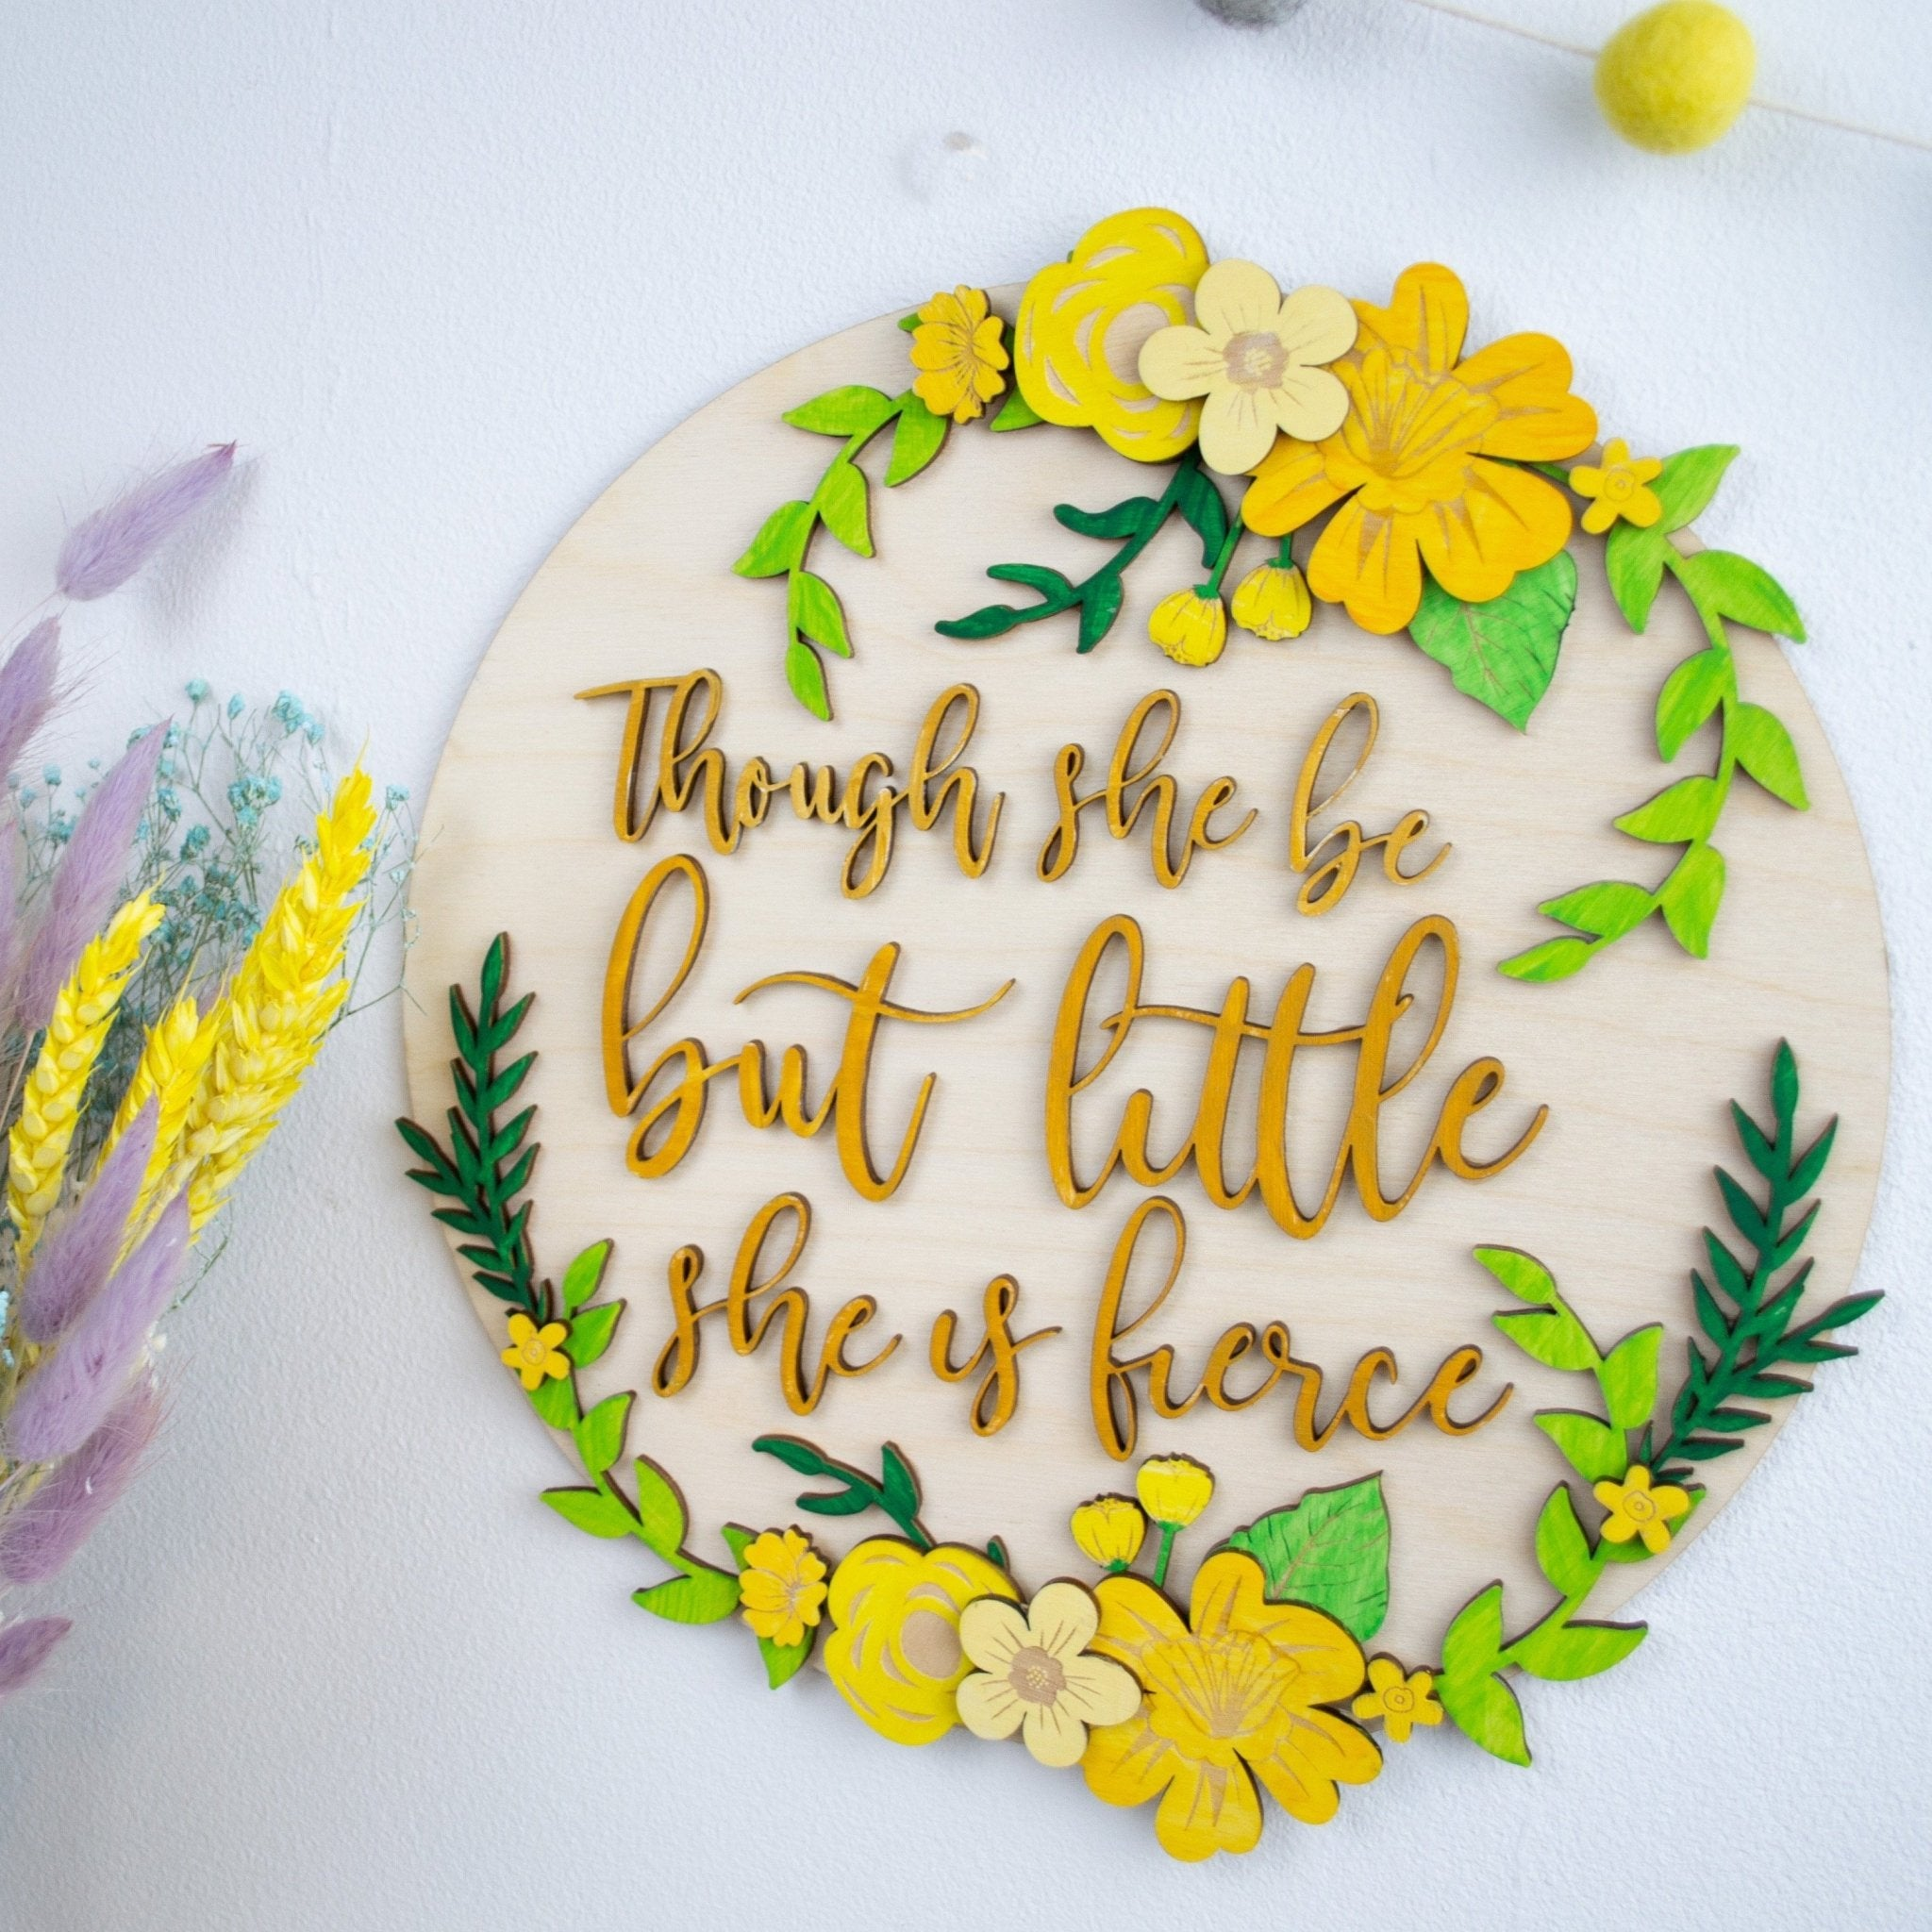 Though she be little she is fierce wooden floral sign